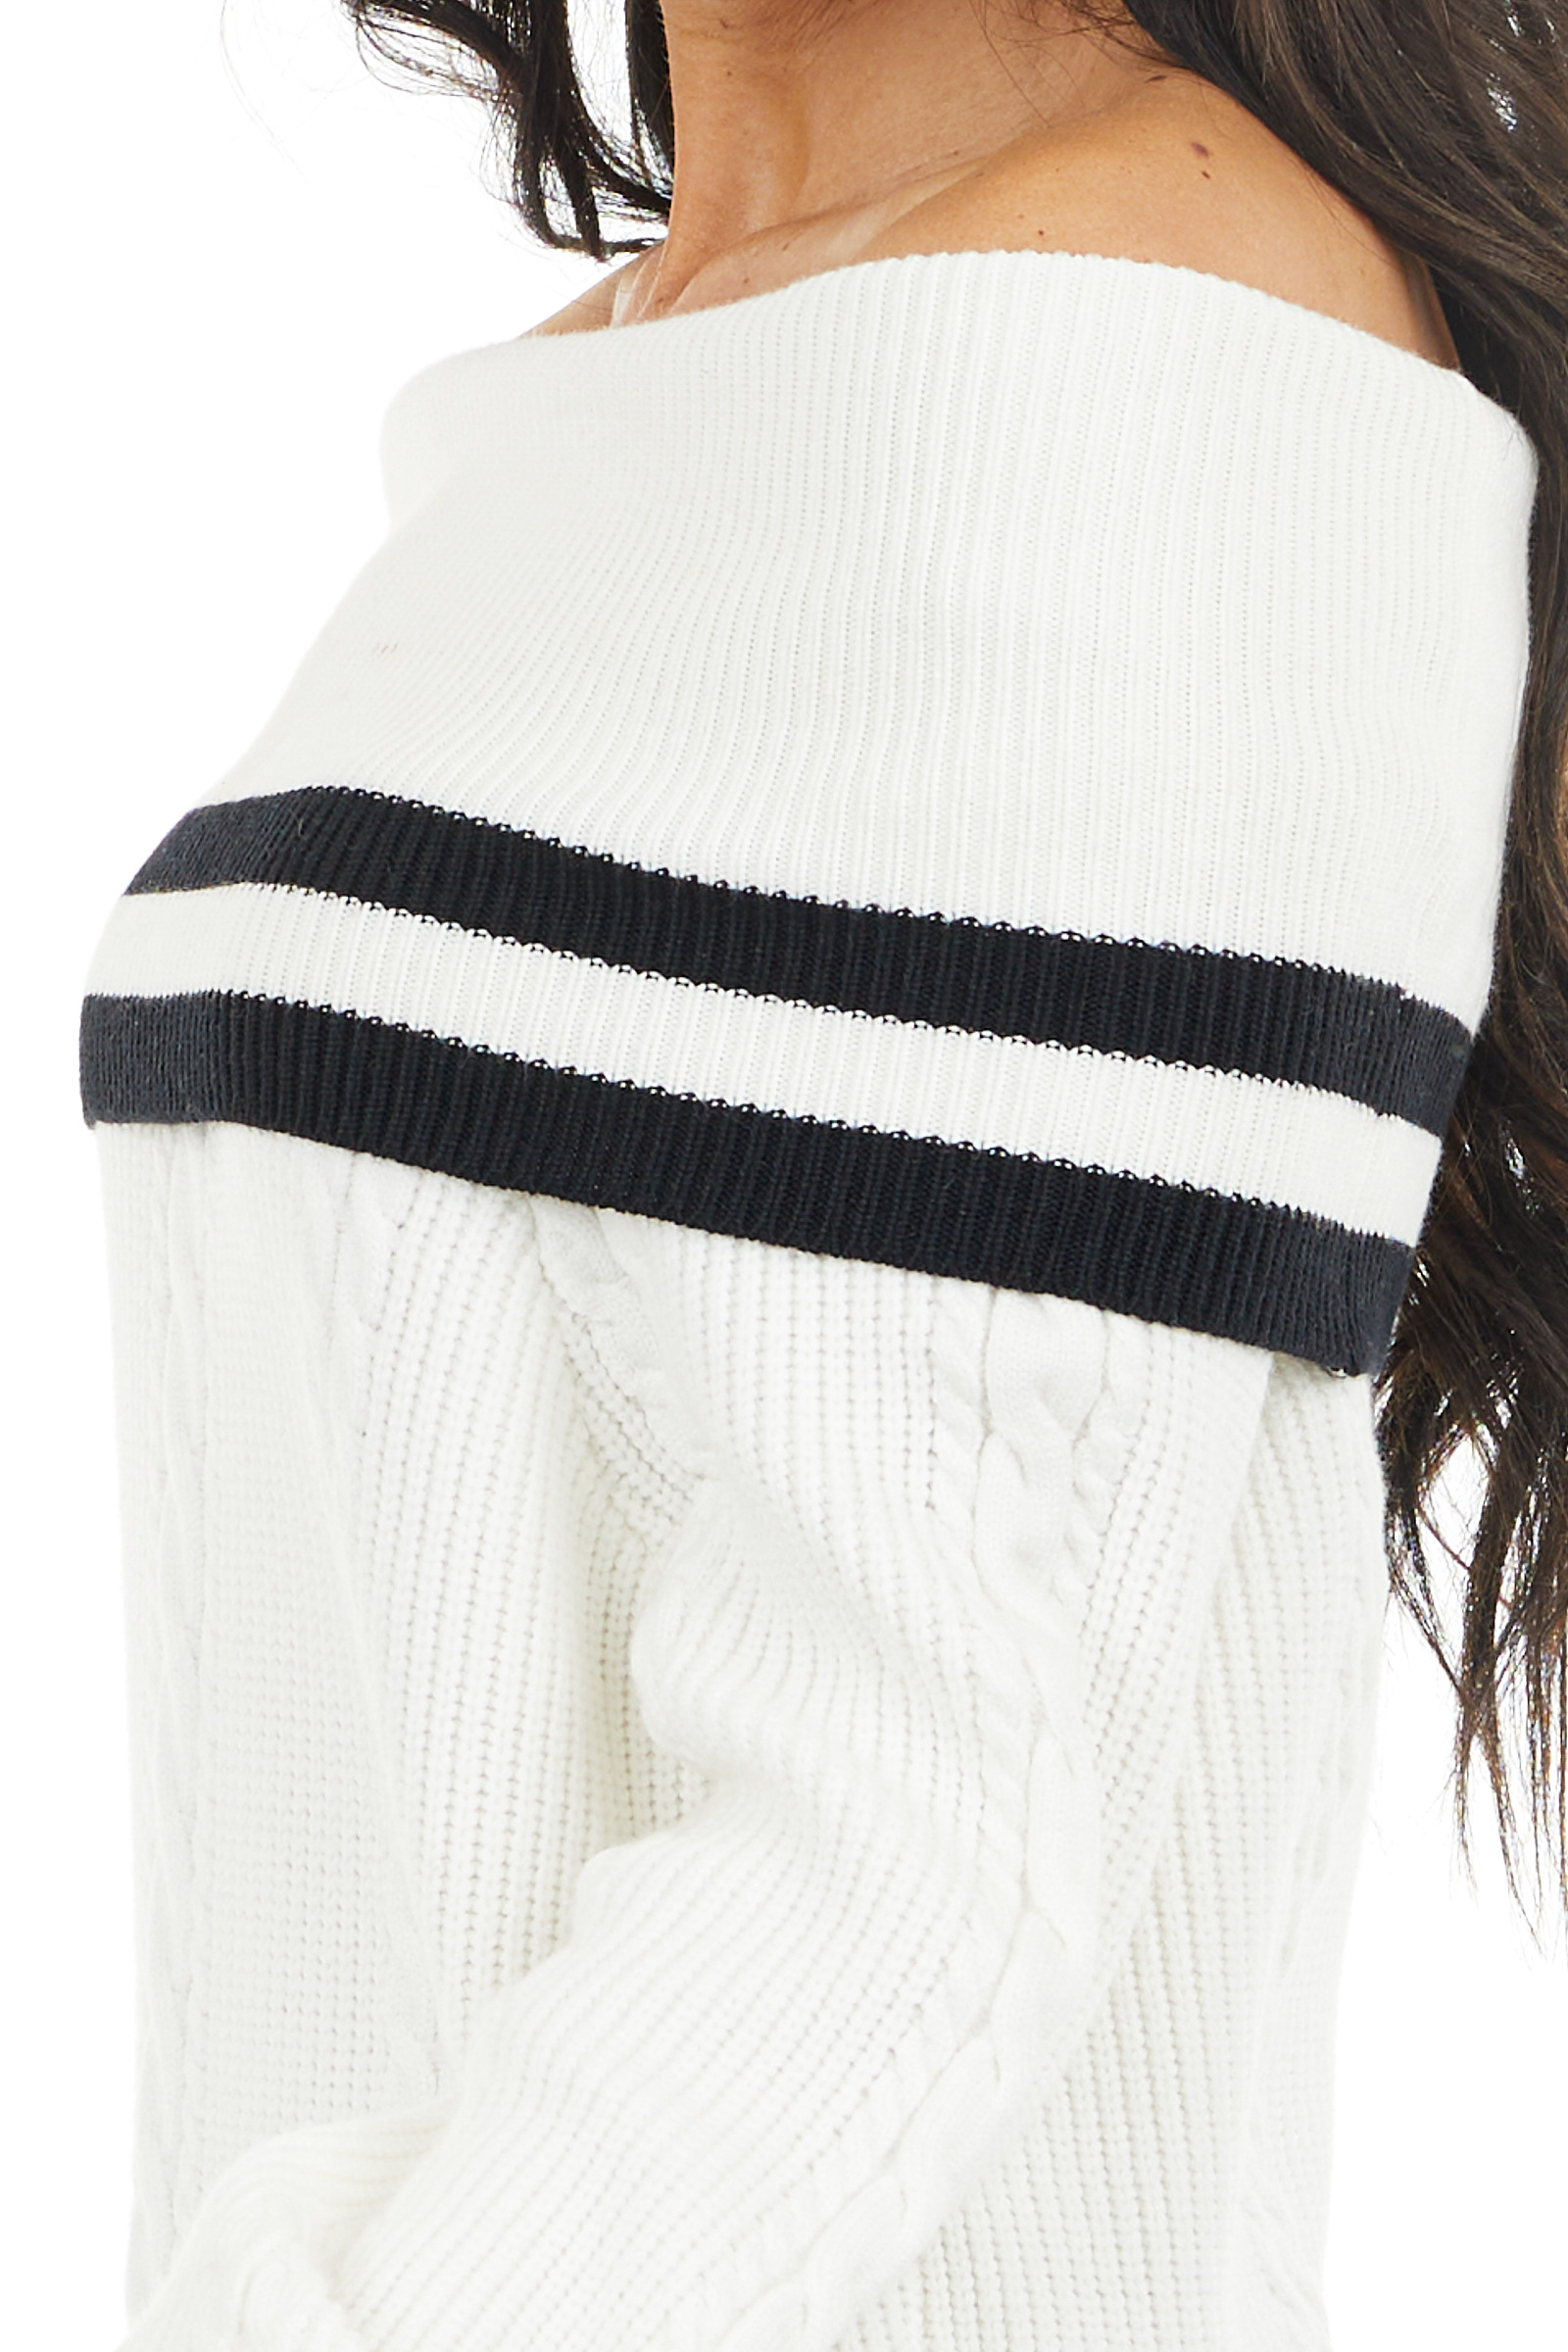 Off White Cable Knit Off Shoulder Sweater with Black Stripes